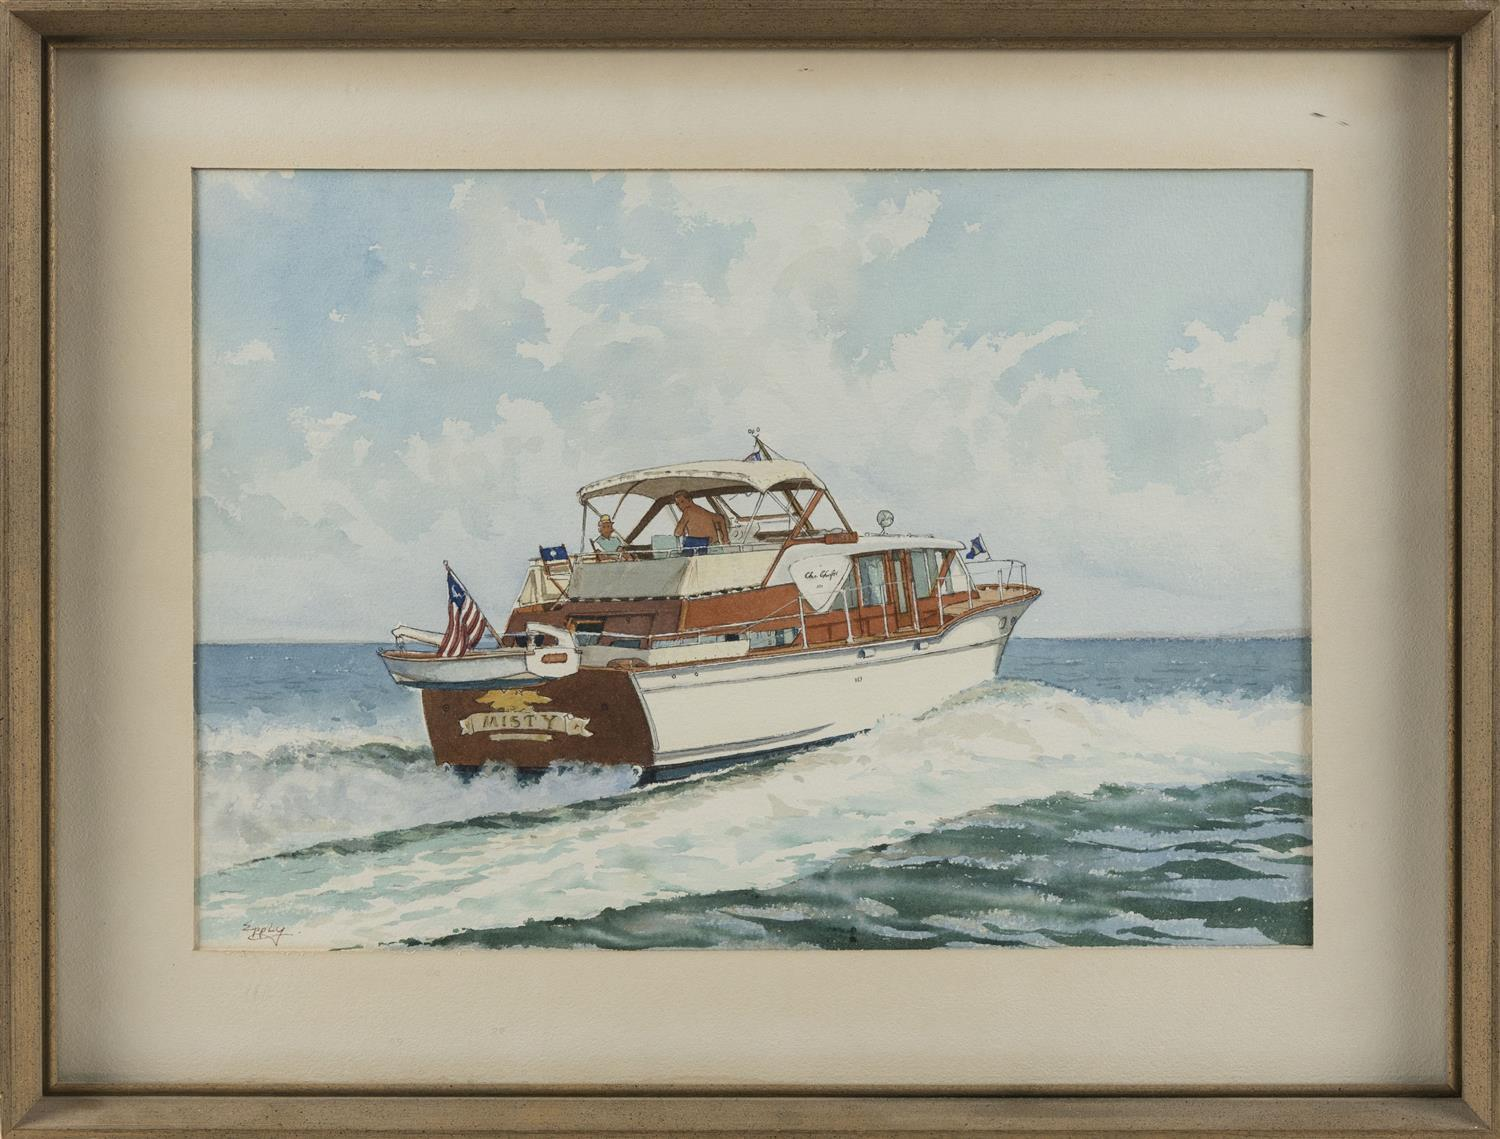 "ROGER EPPLY, Connecticut, 1919-1996, The Chris-Craft sports fisherman Misty., Watercolor on paper, 13"" x 18.75"". Framed 19"" x 25""."